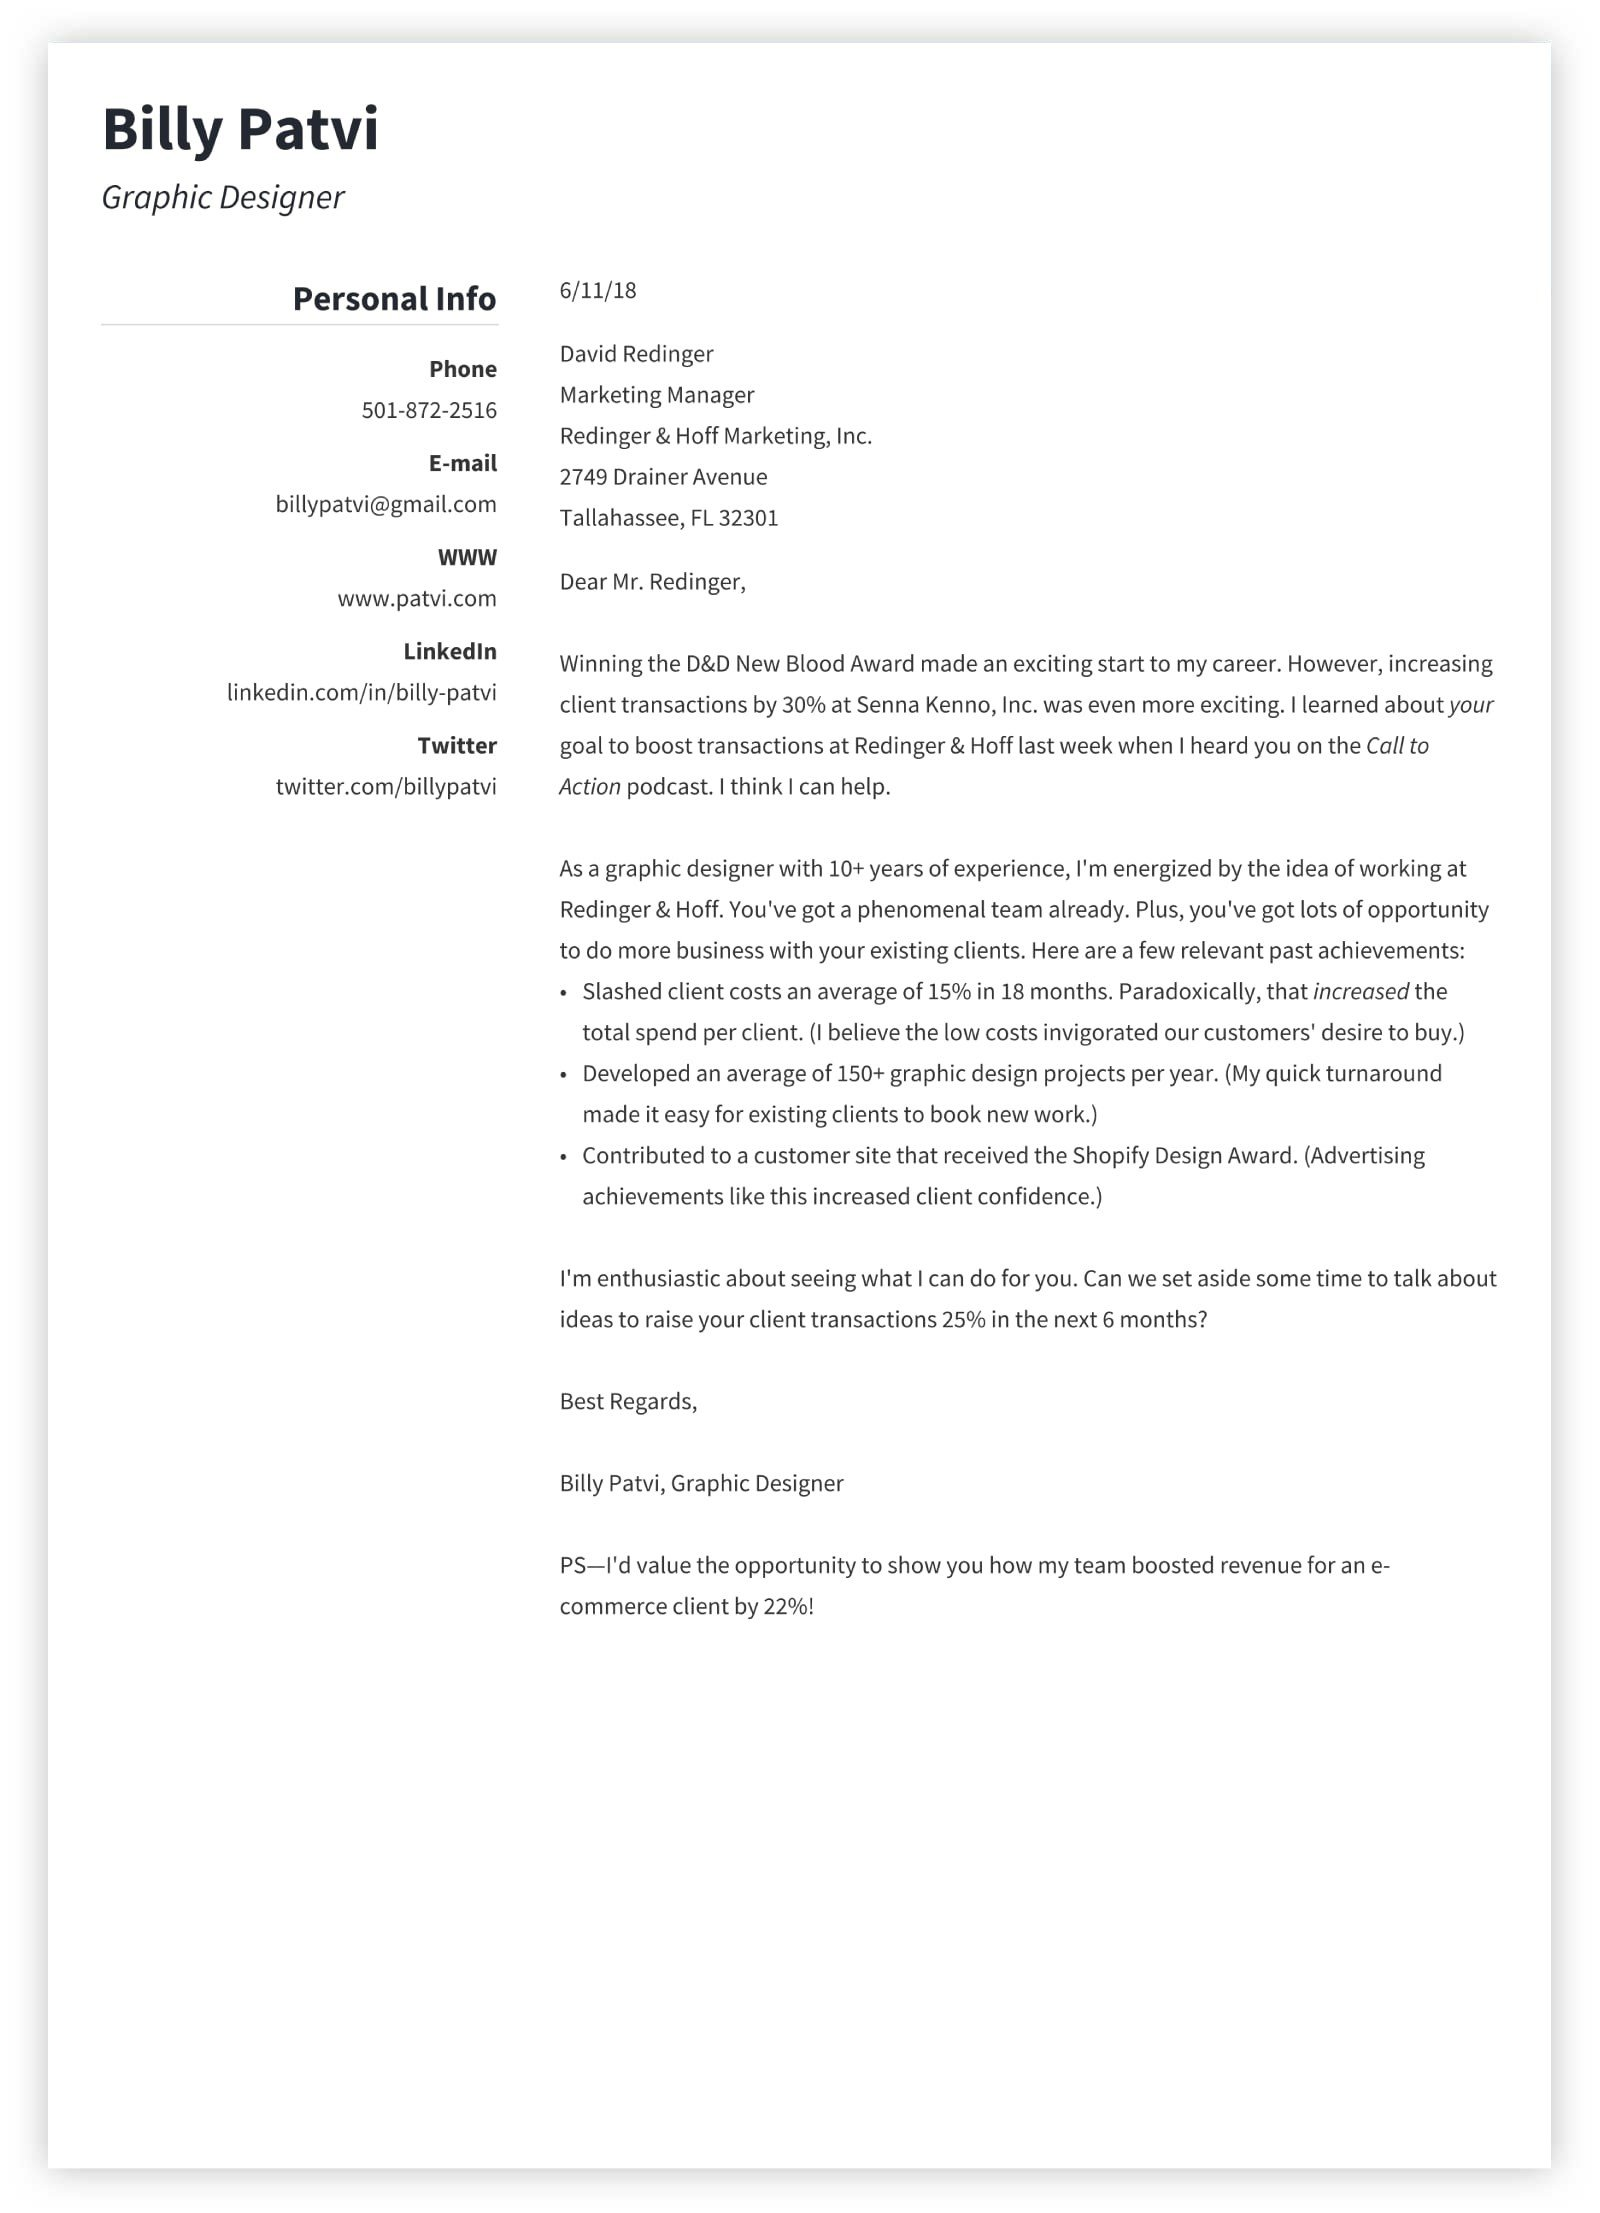 Email Application Letter, Graphic Design Cover Letter, Email Application Letter